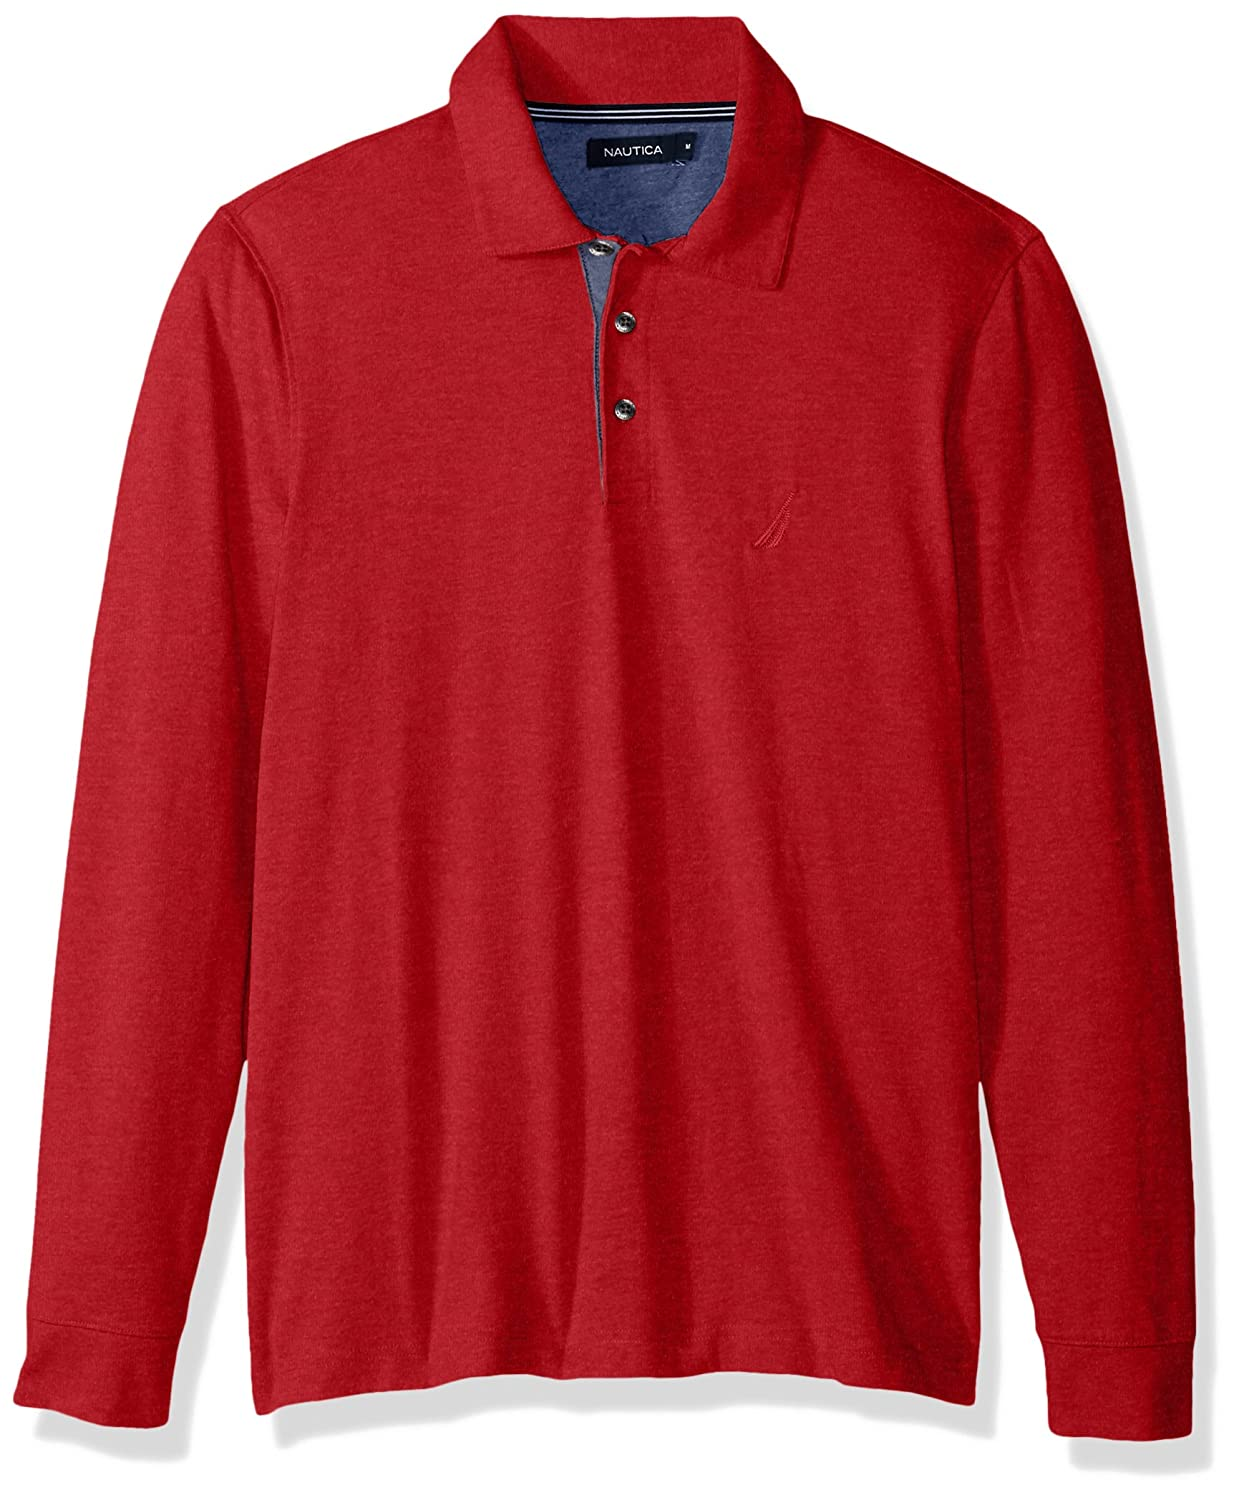 Nautica Men's Long Sleeve Cotton Blend Jersey Piece Dyed Polo K73150